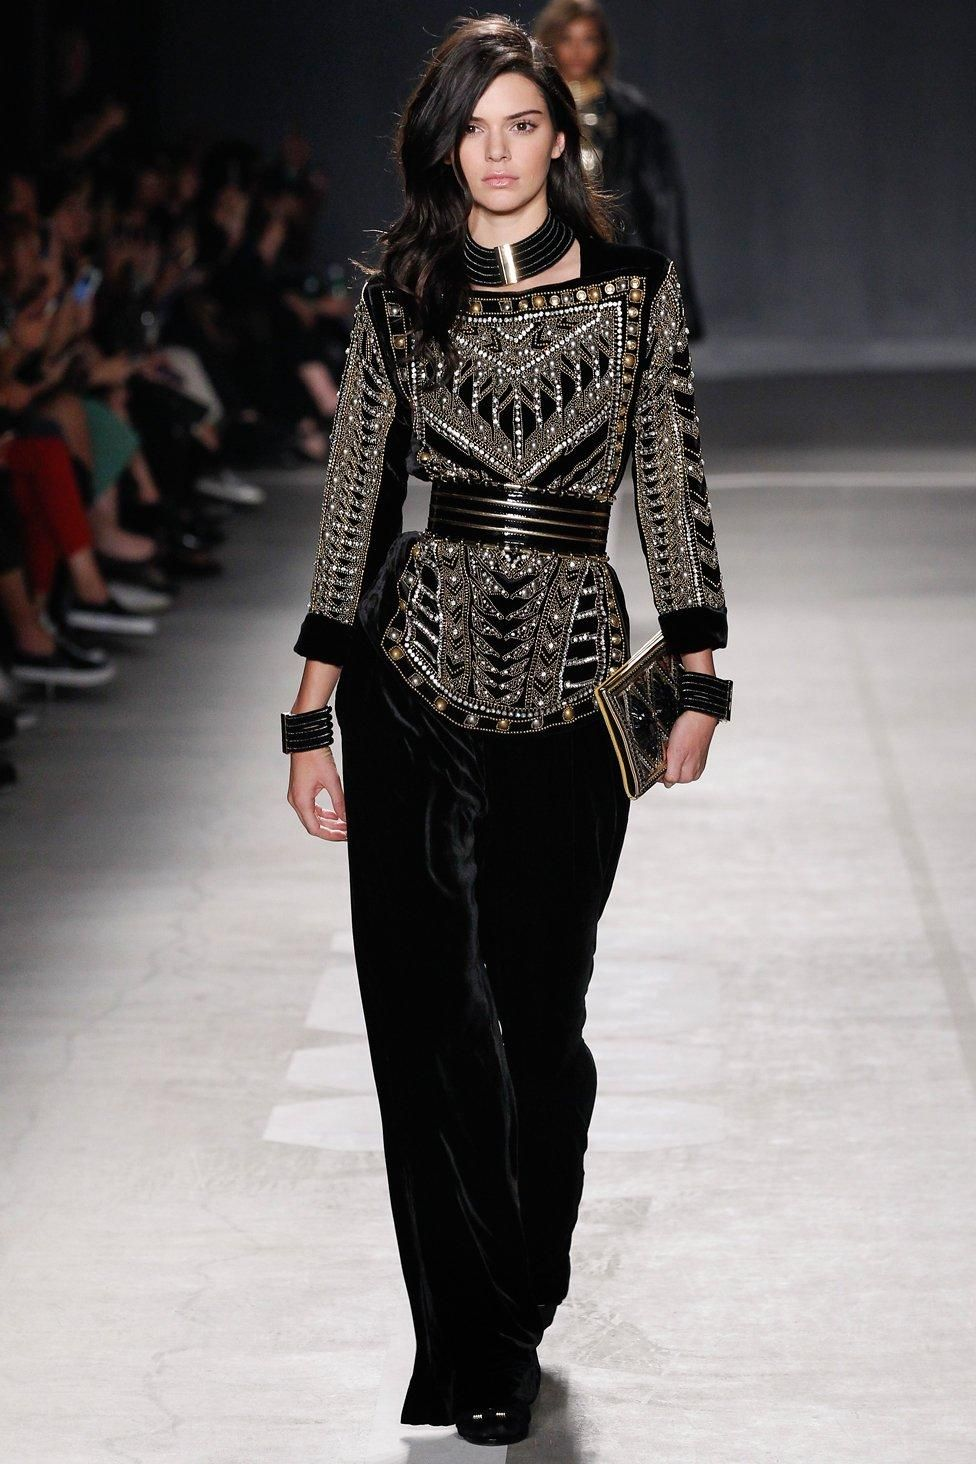 073c59d4 See every look from the Balmain x H&M Collaboration Collection runway show